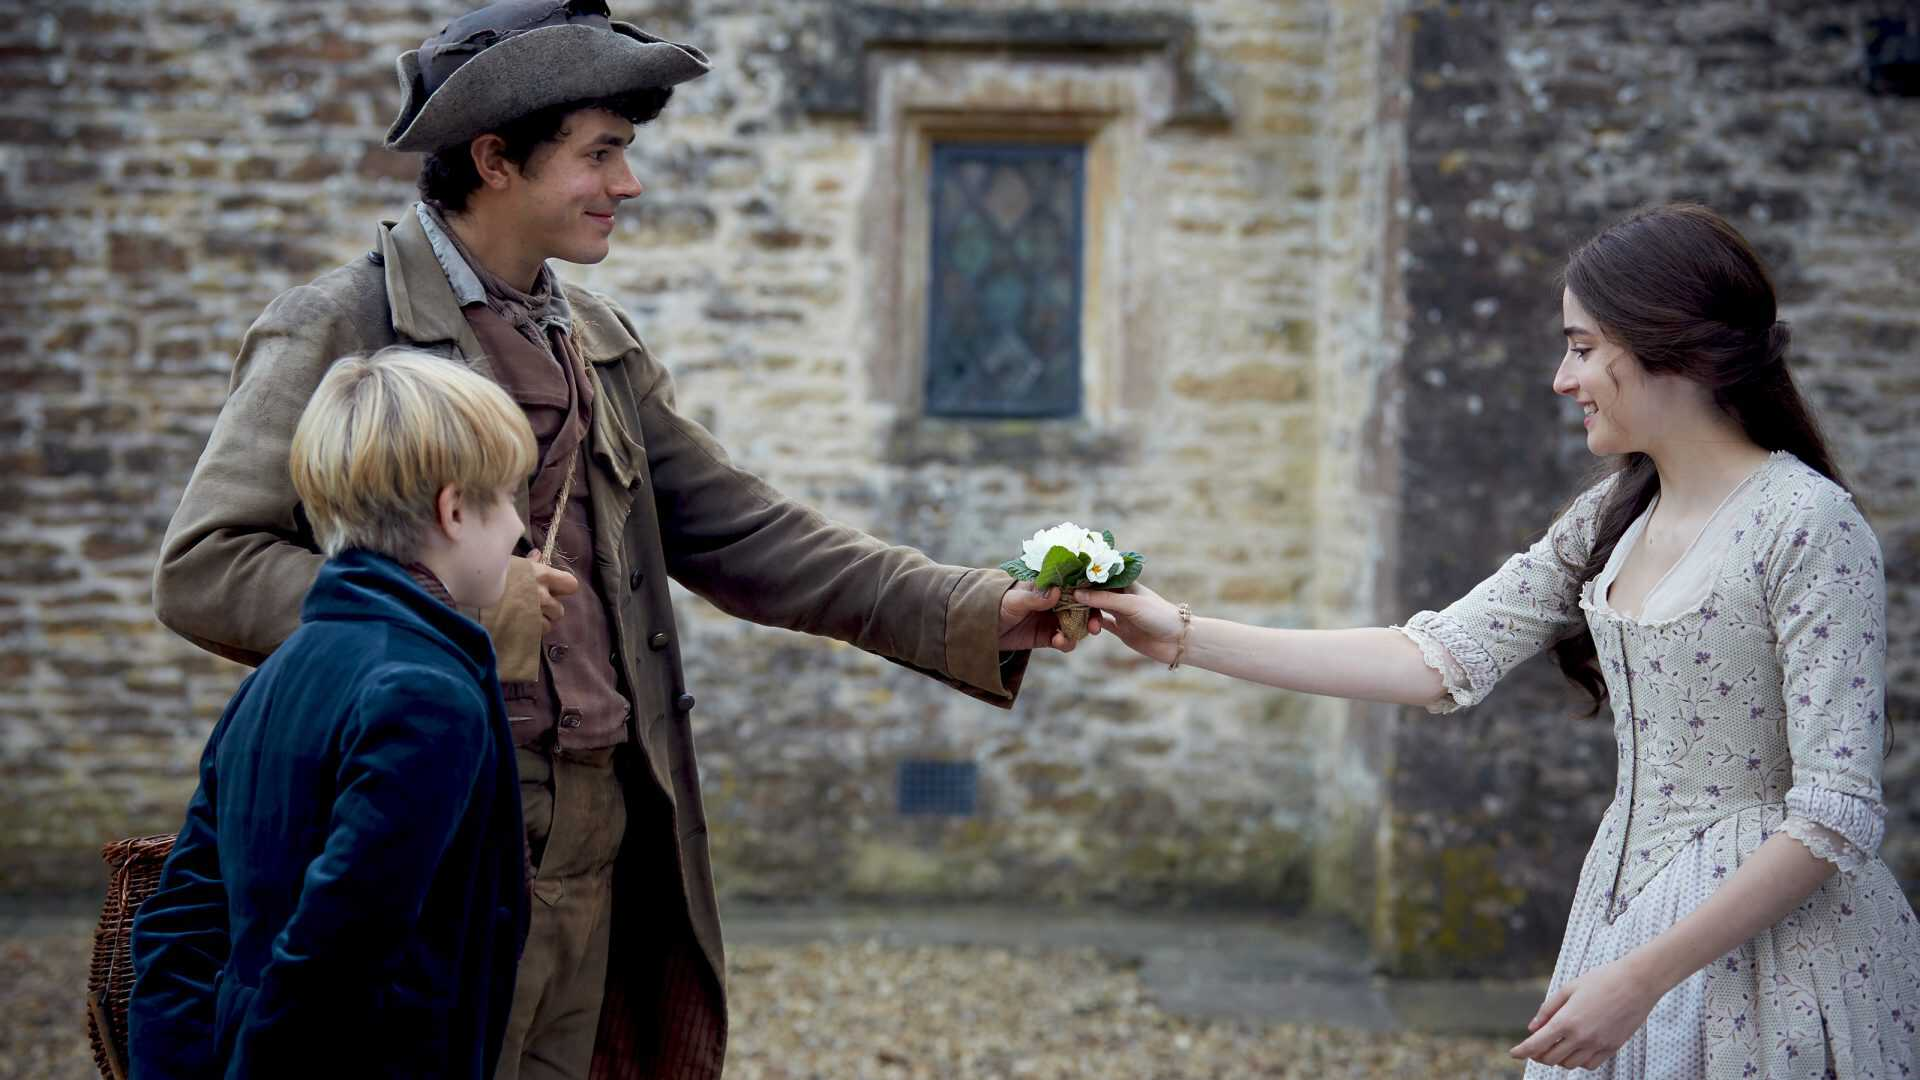 EXCLUSIVE: Behind The Scenes On Poldark